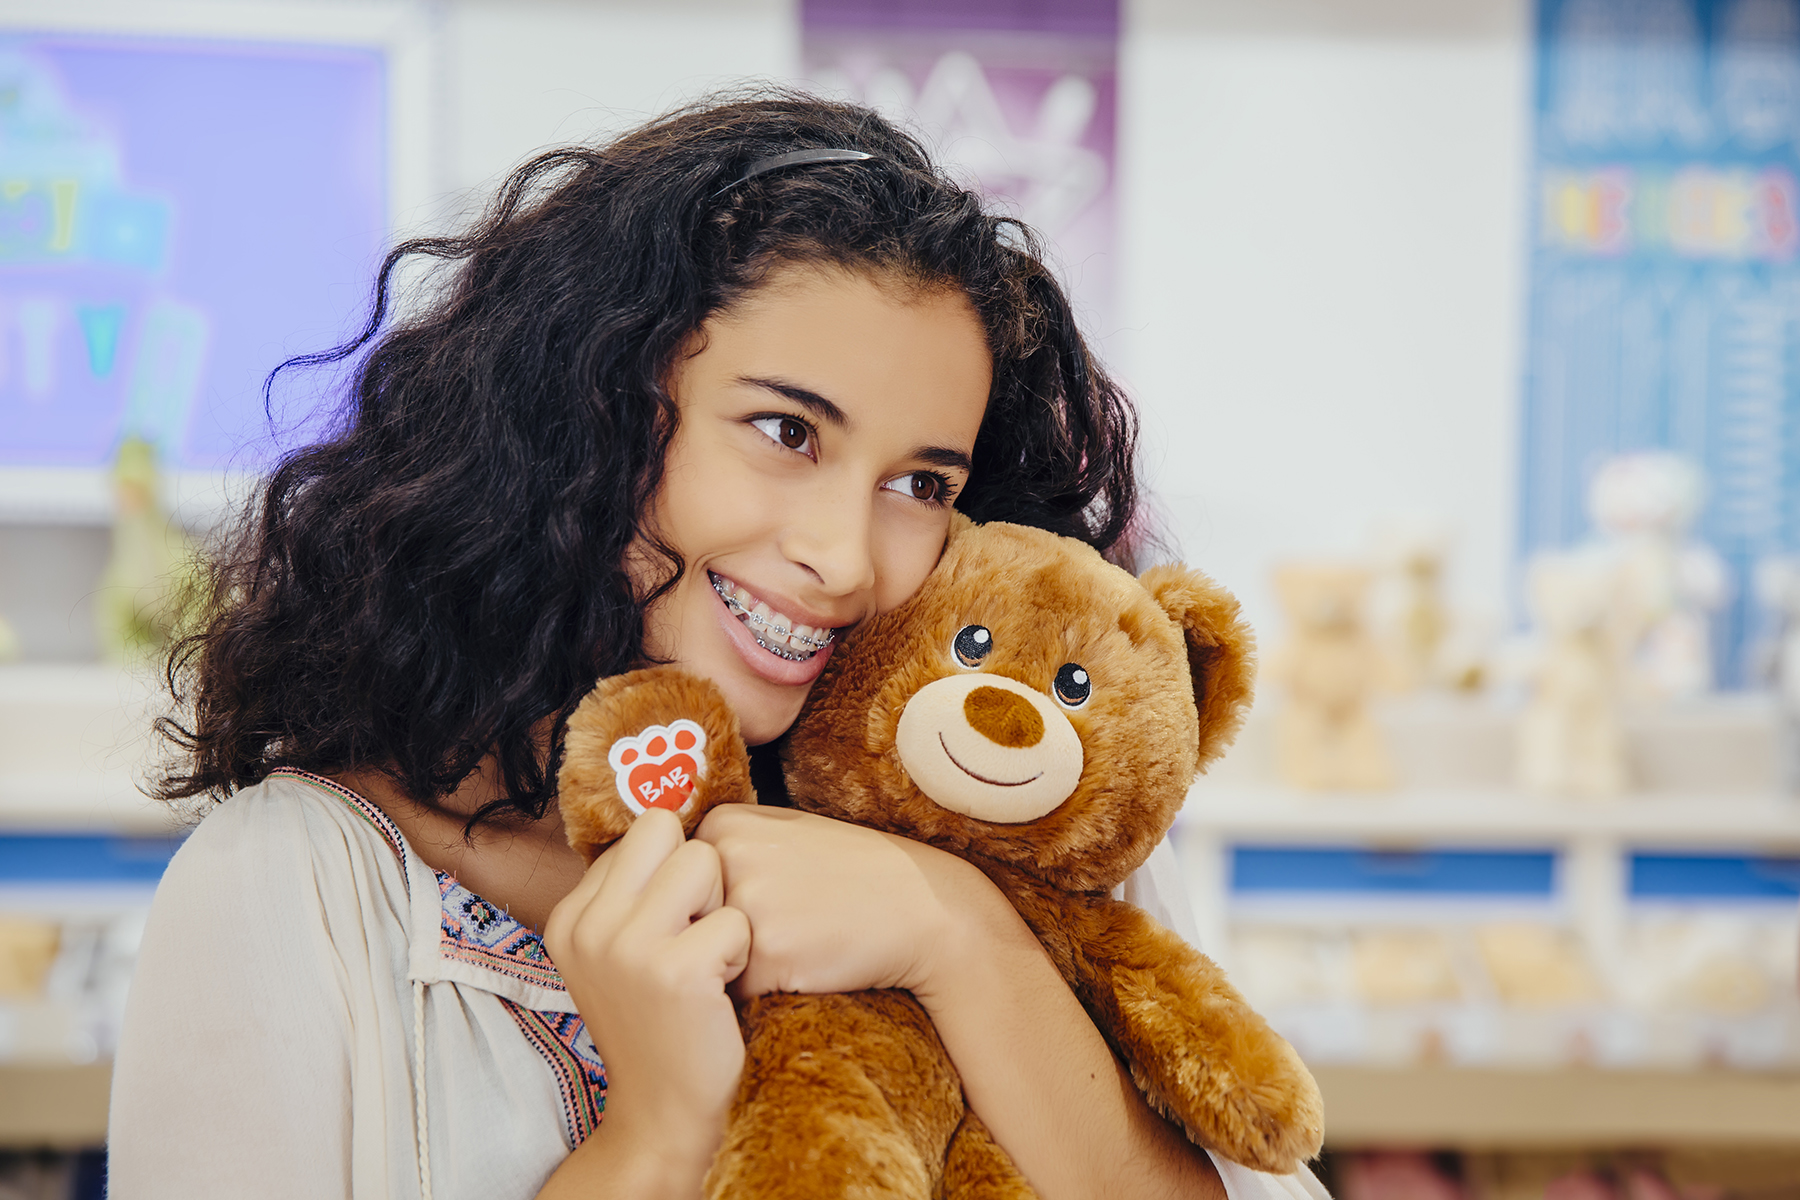 Young girl holding a brown teddy bear.